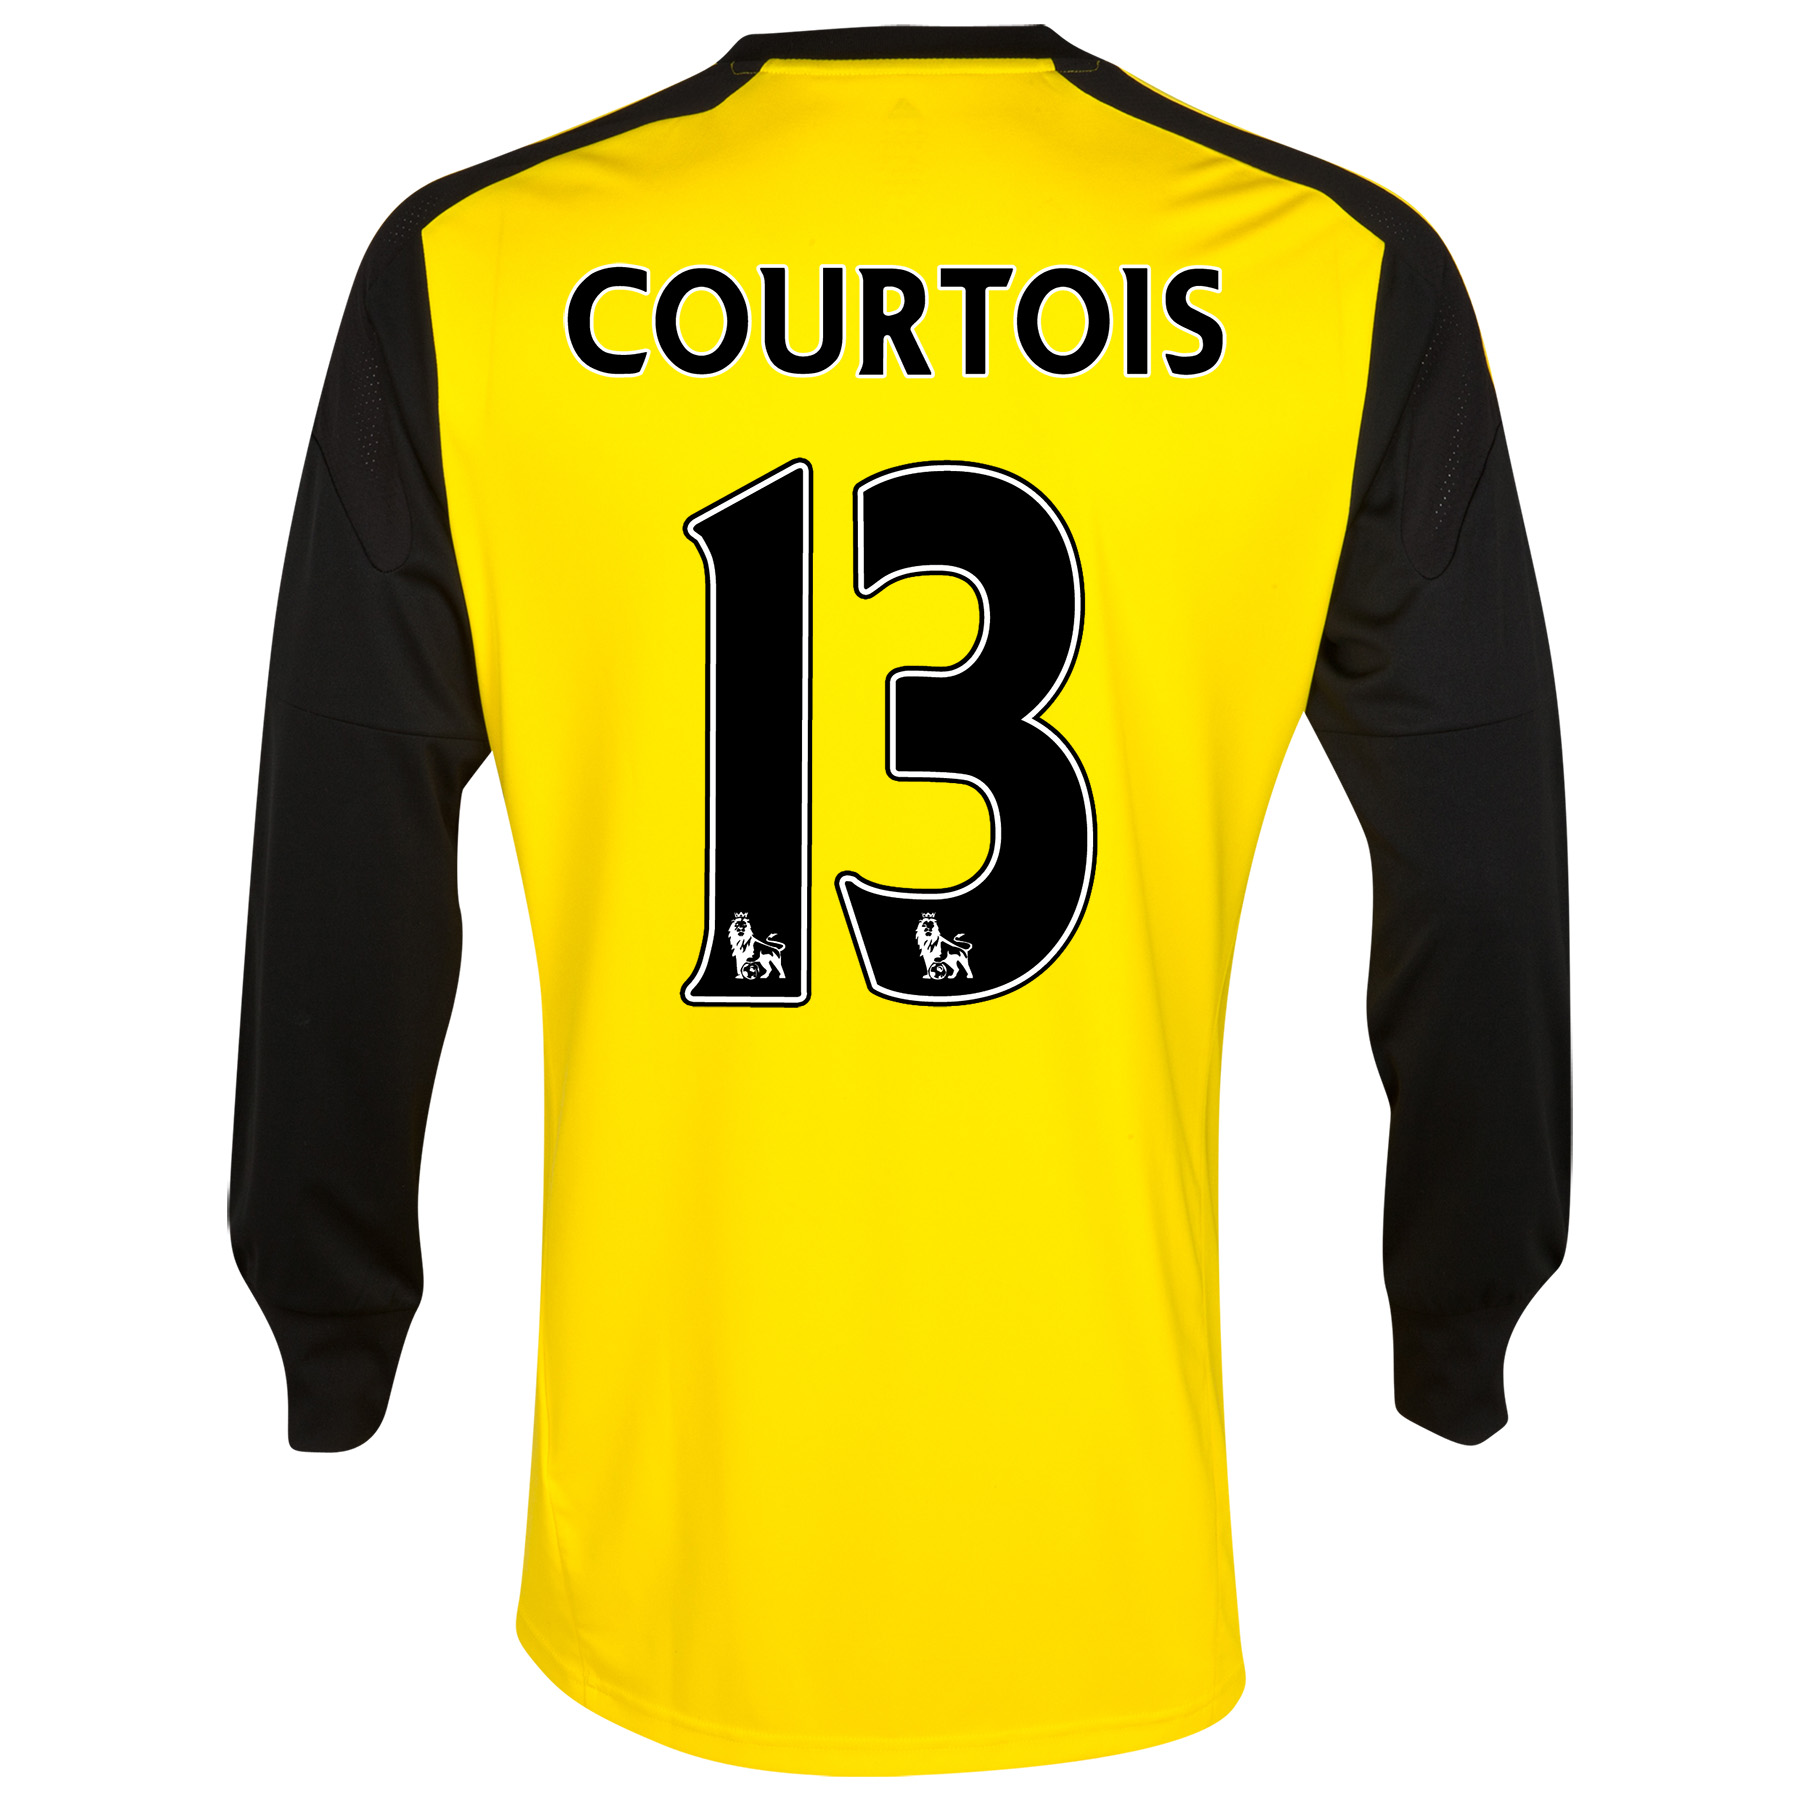 Chelsea Home Goalkeeper Shirt 2013/14 kids with Courtois 13 printing